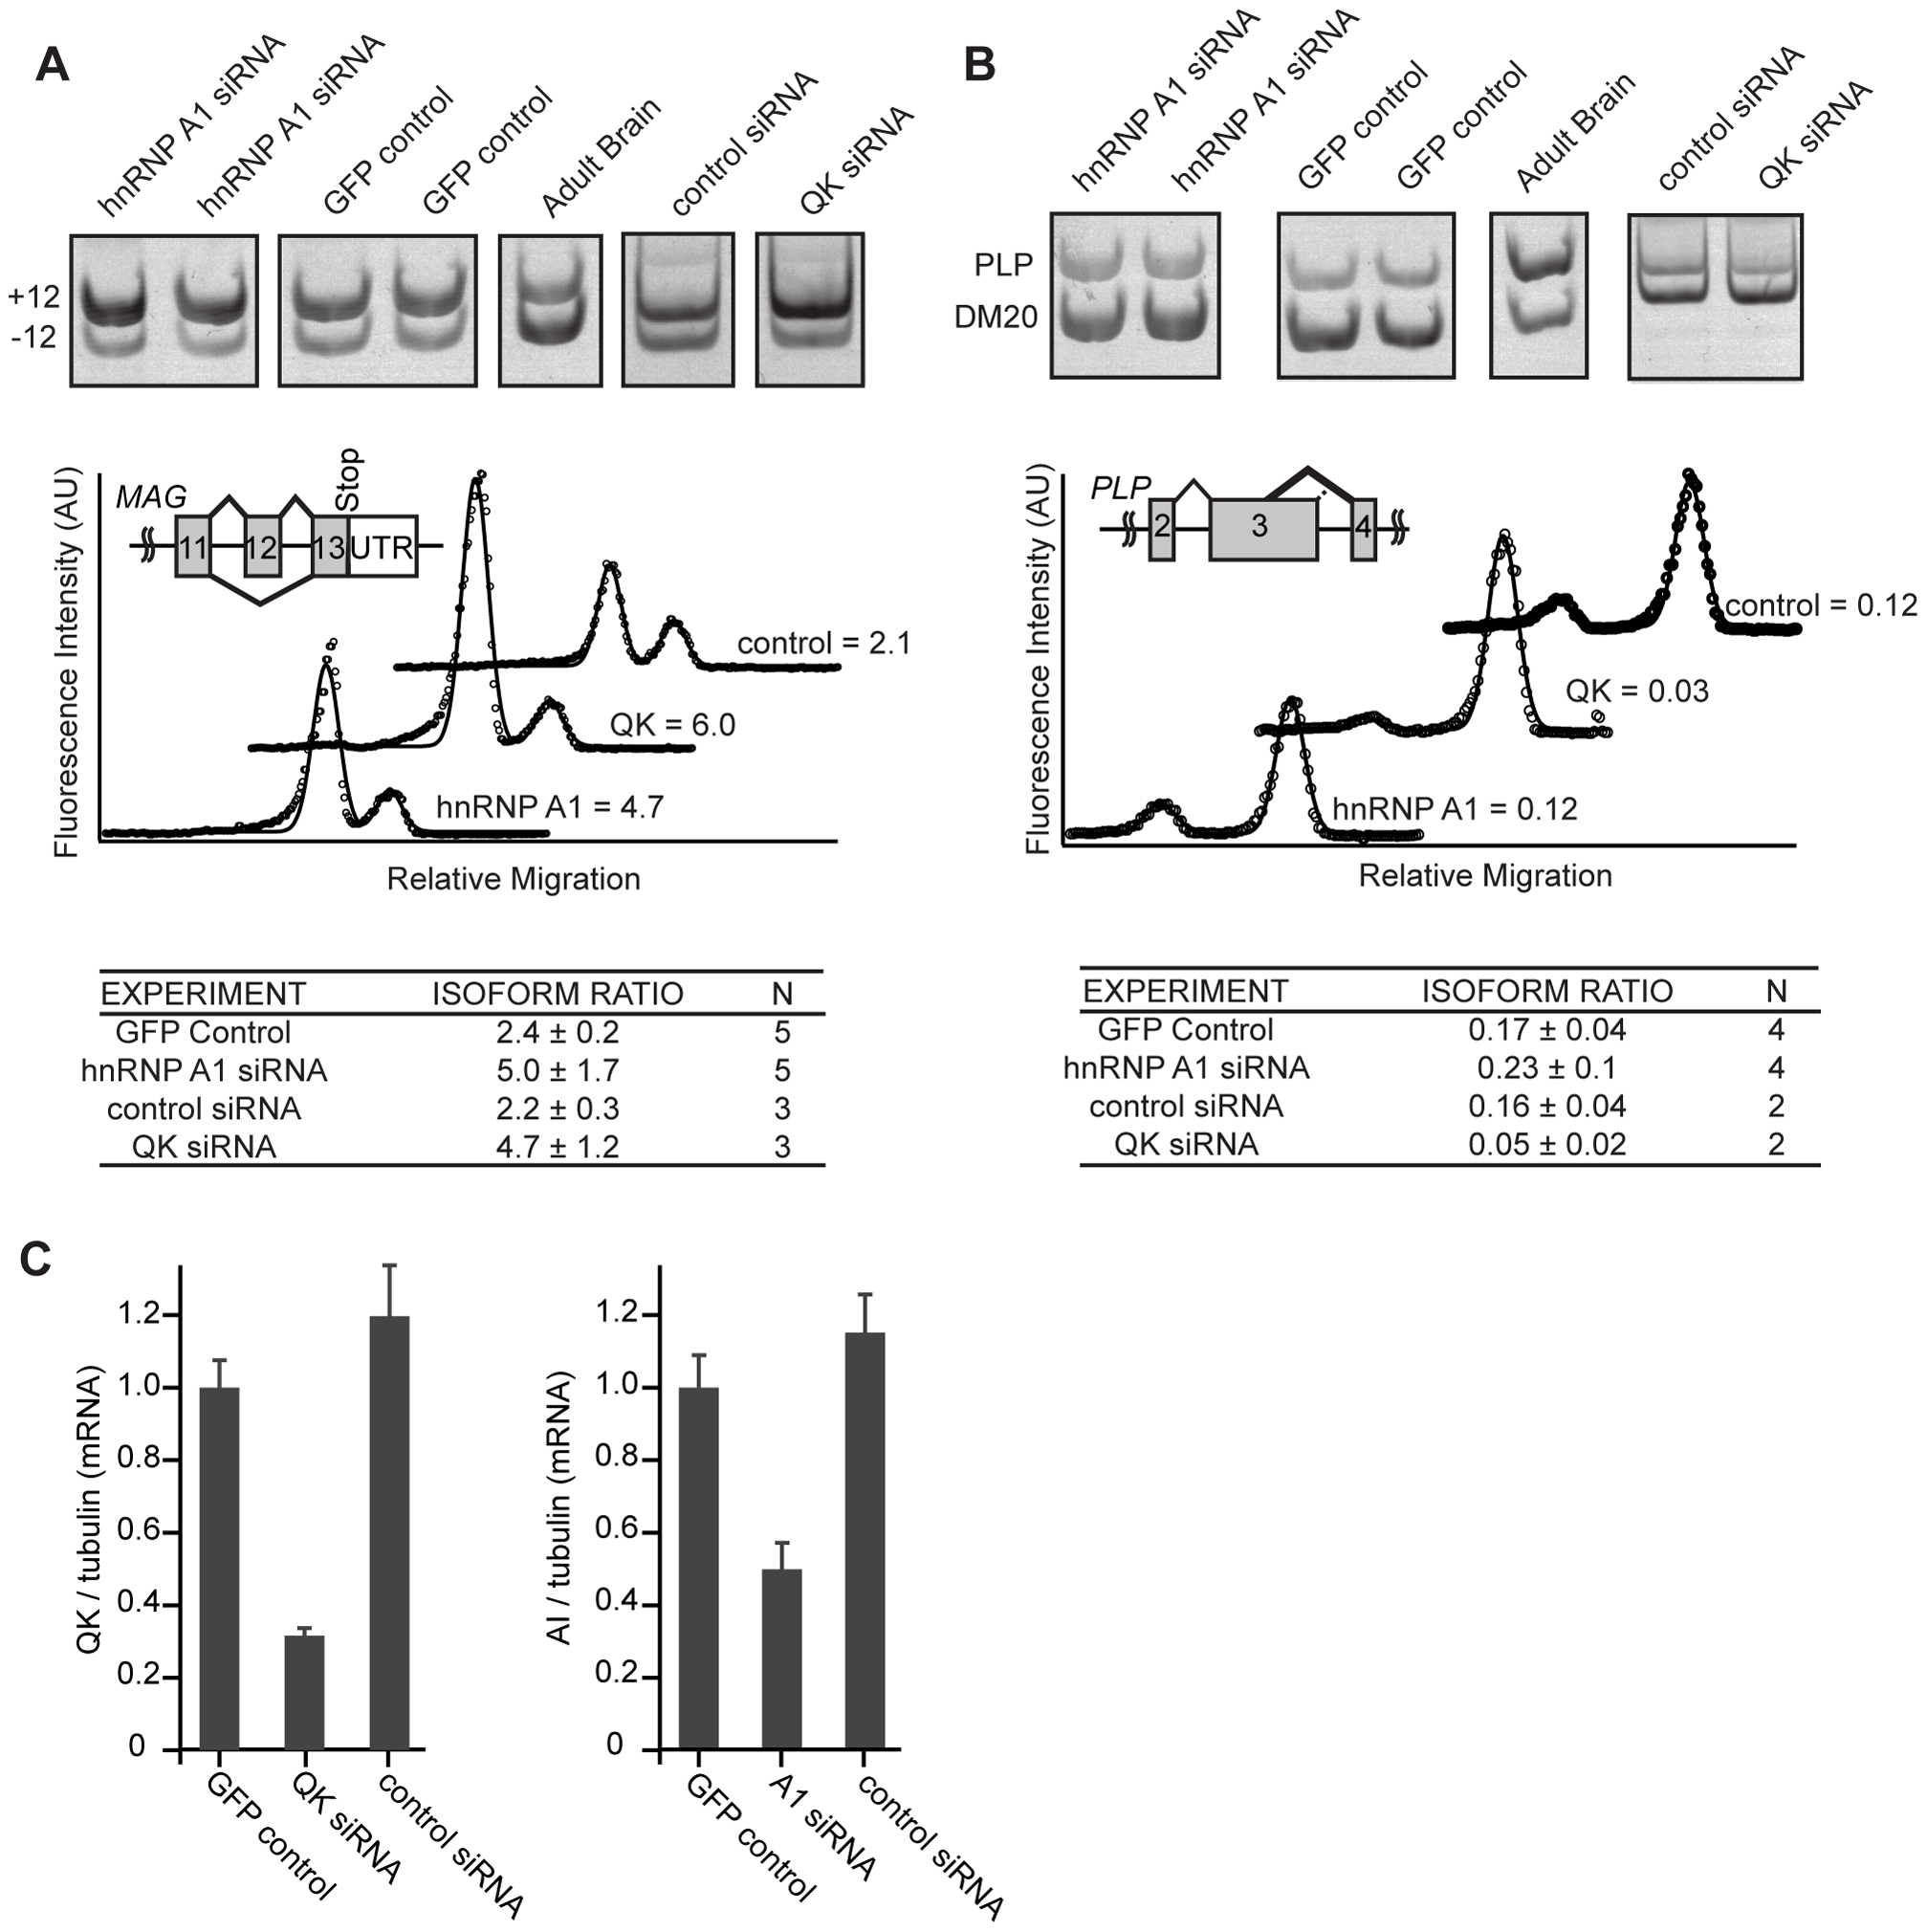 hnRNP A1 co-regulates <i>Mag</i> alternative splicing.